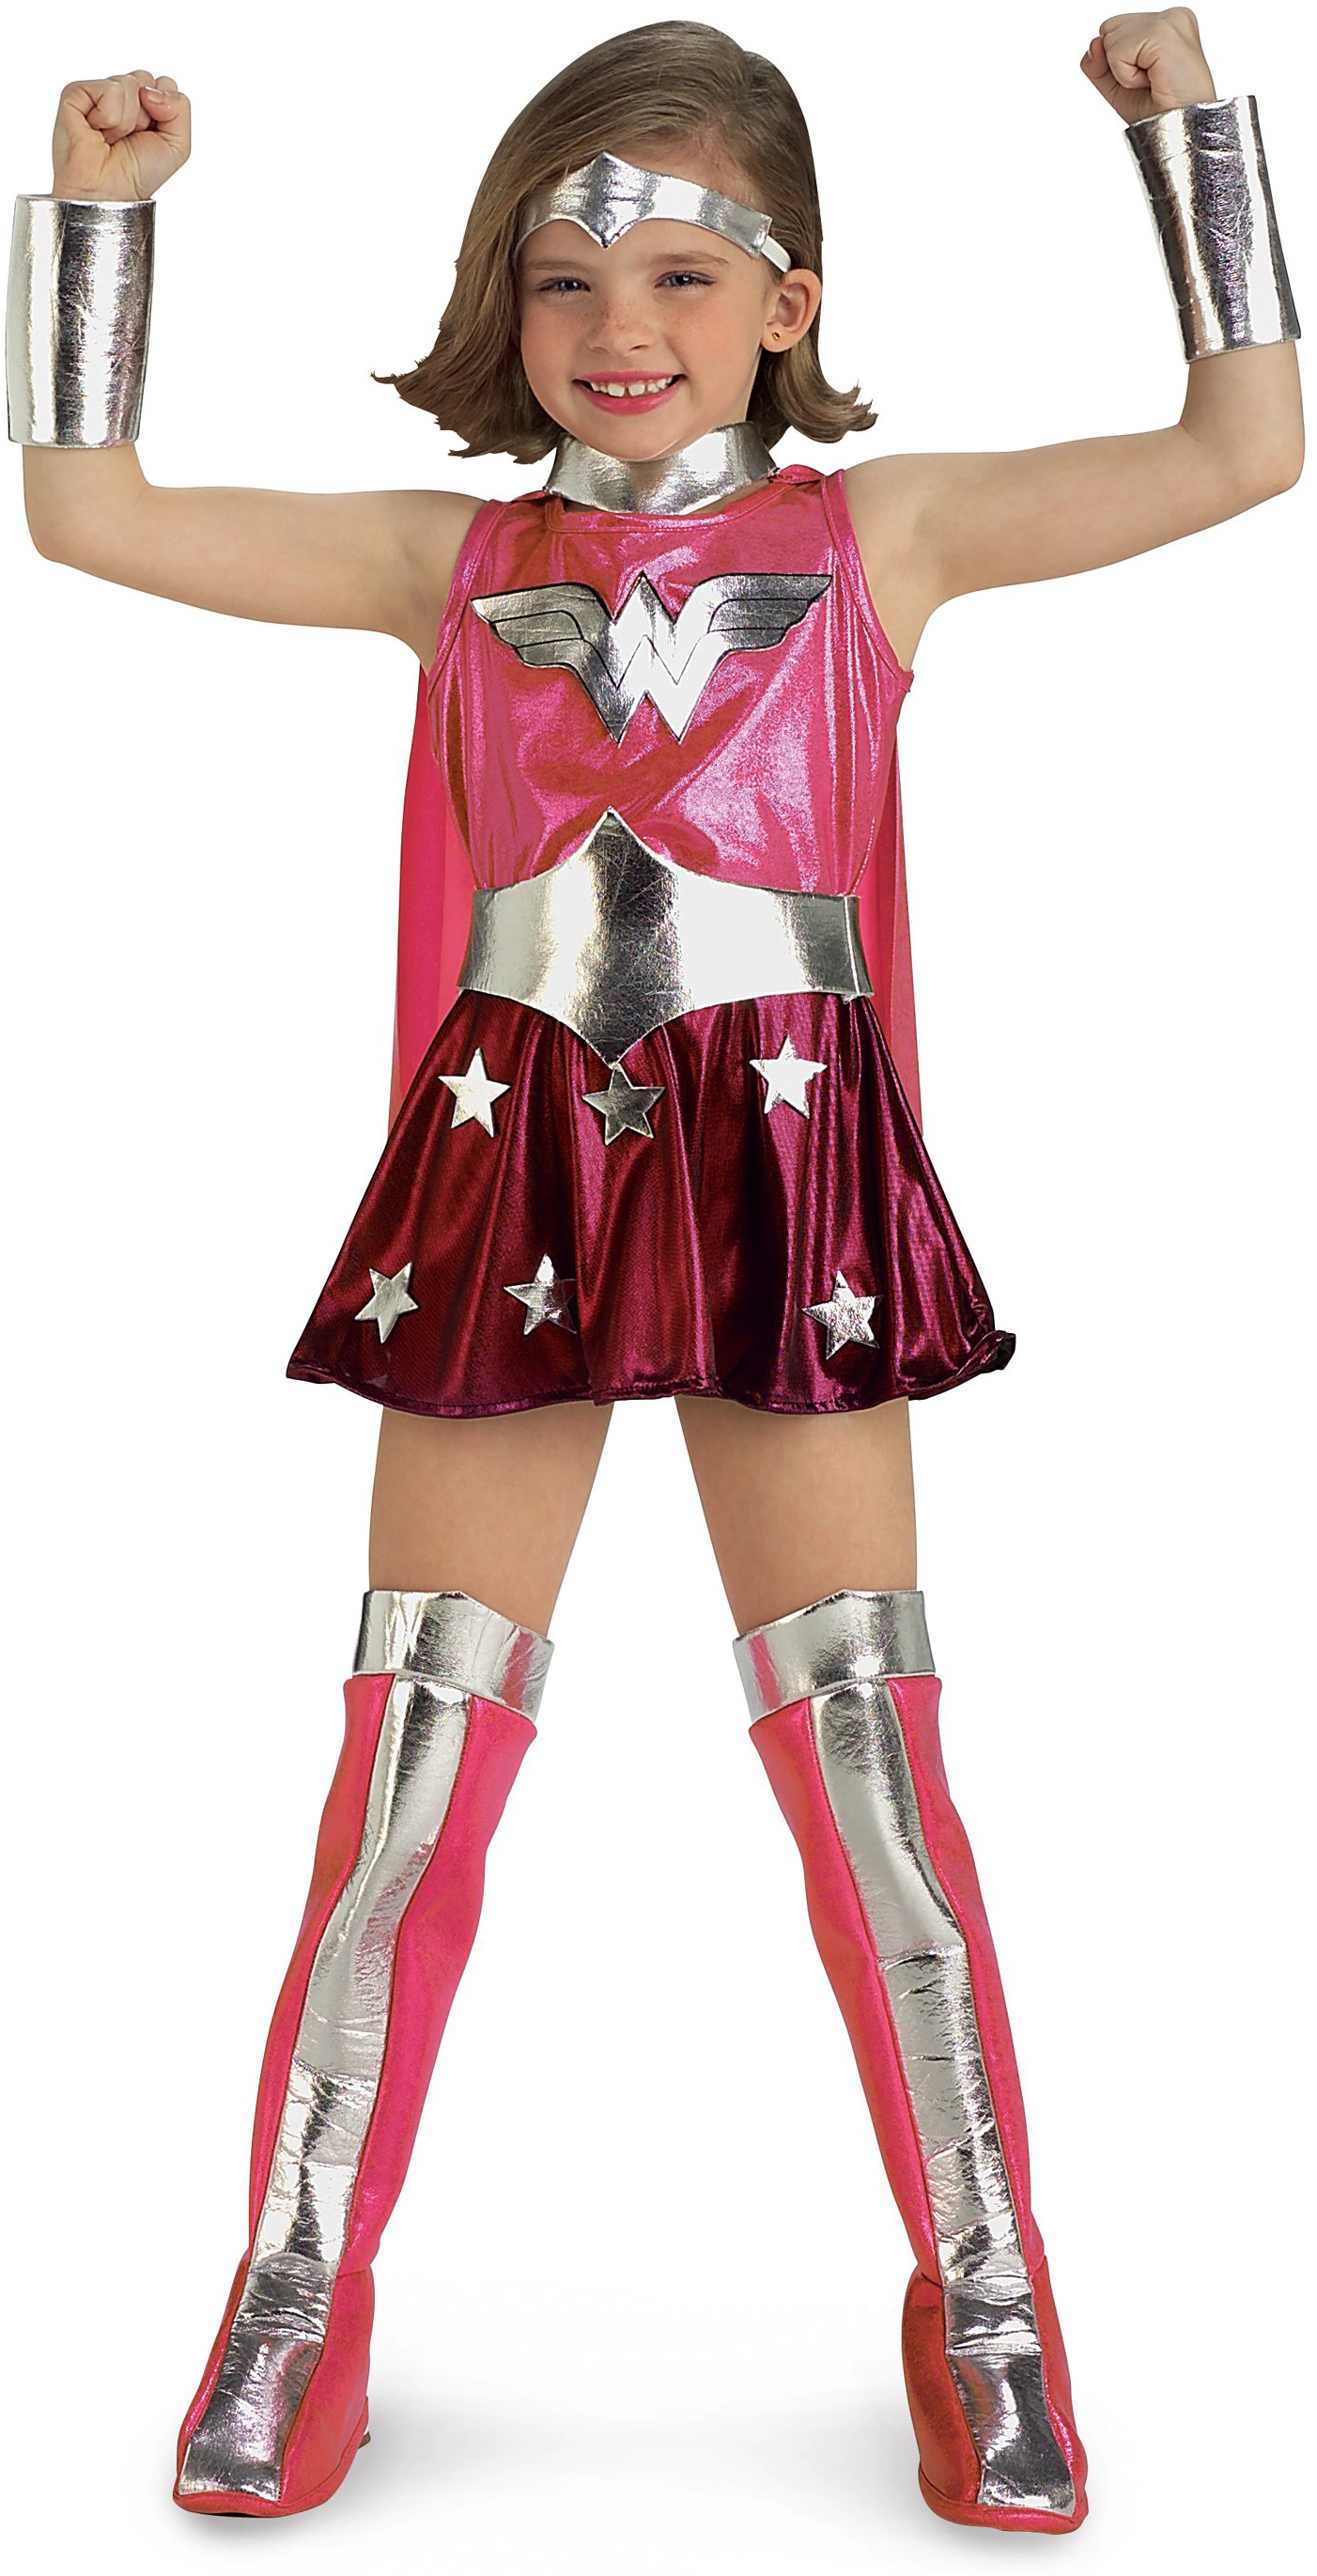 Where to buy wonder woman costume-1158